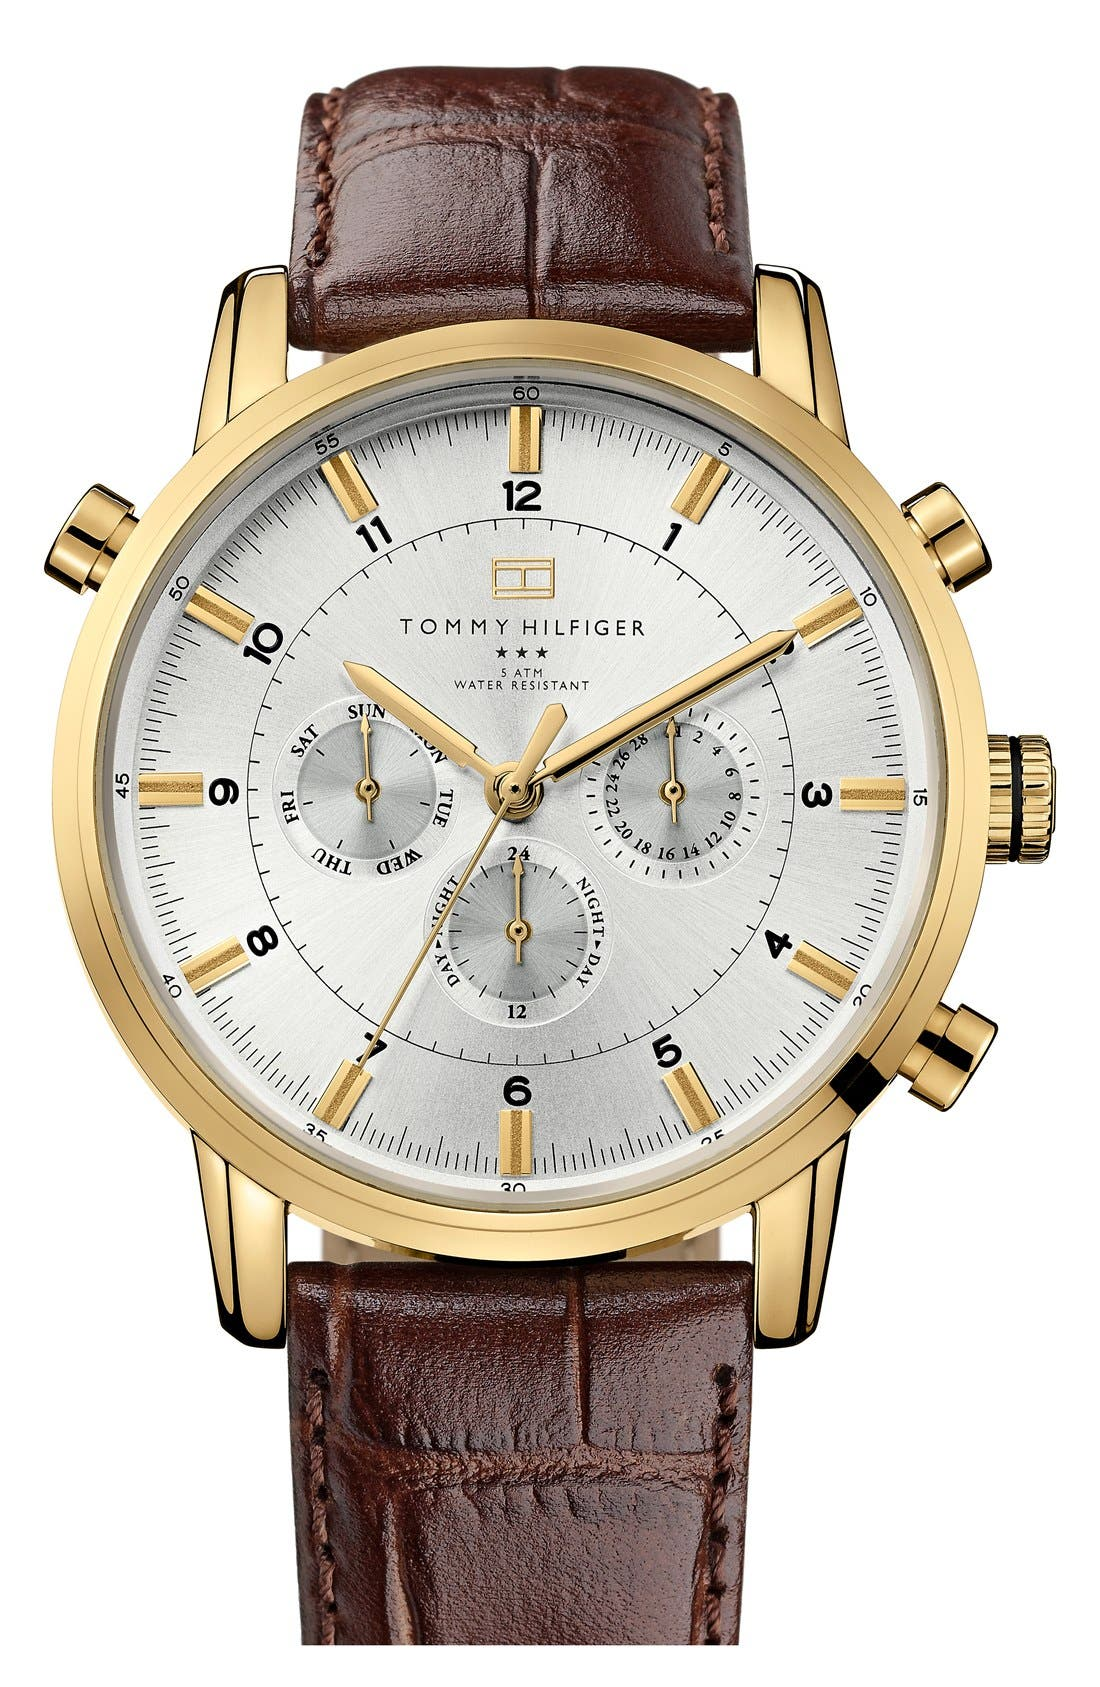 Main Image - Tommy Hilfiger Round Chronograph Leather Strap Watch, 44mm